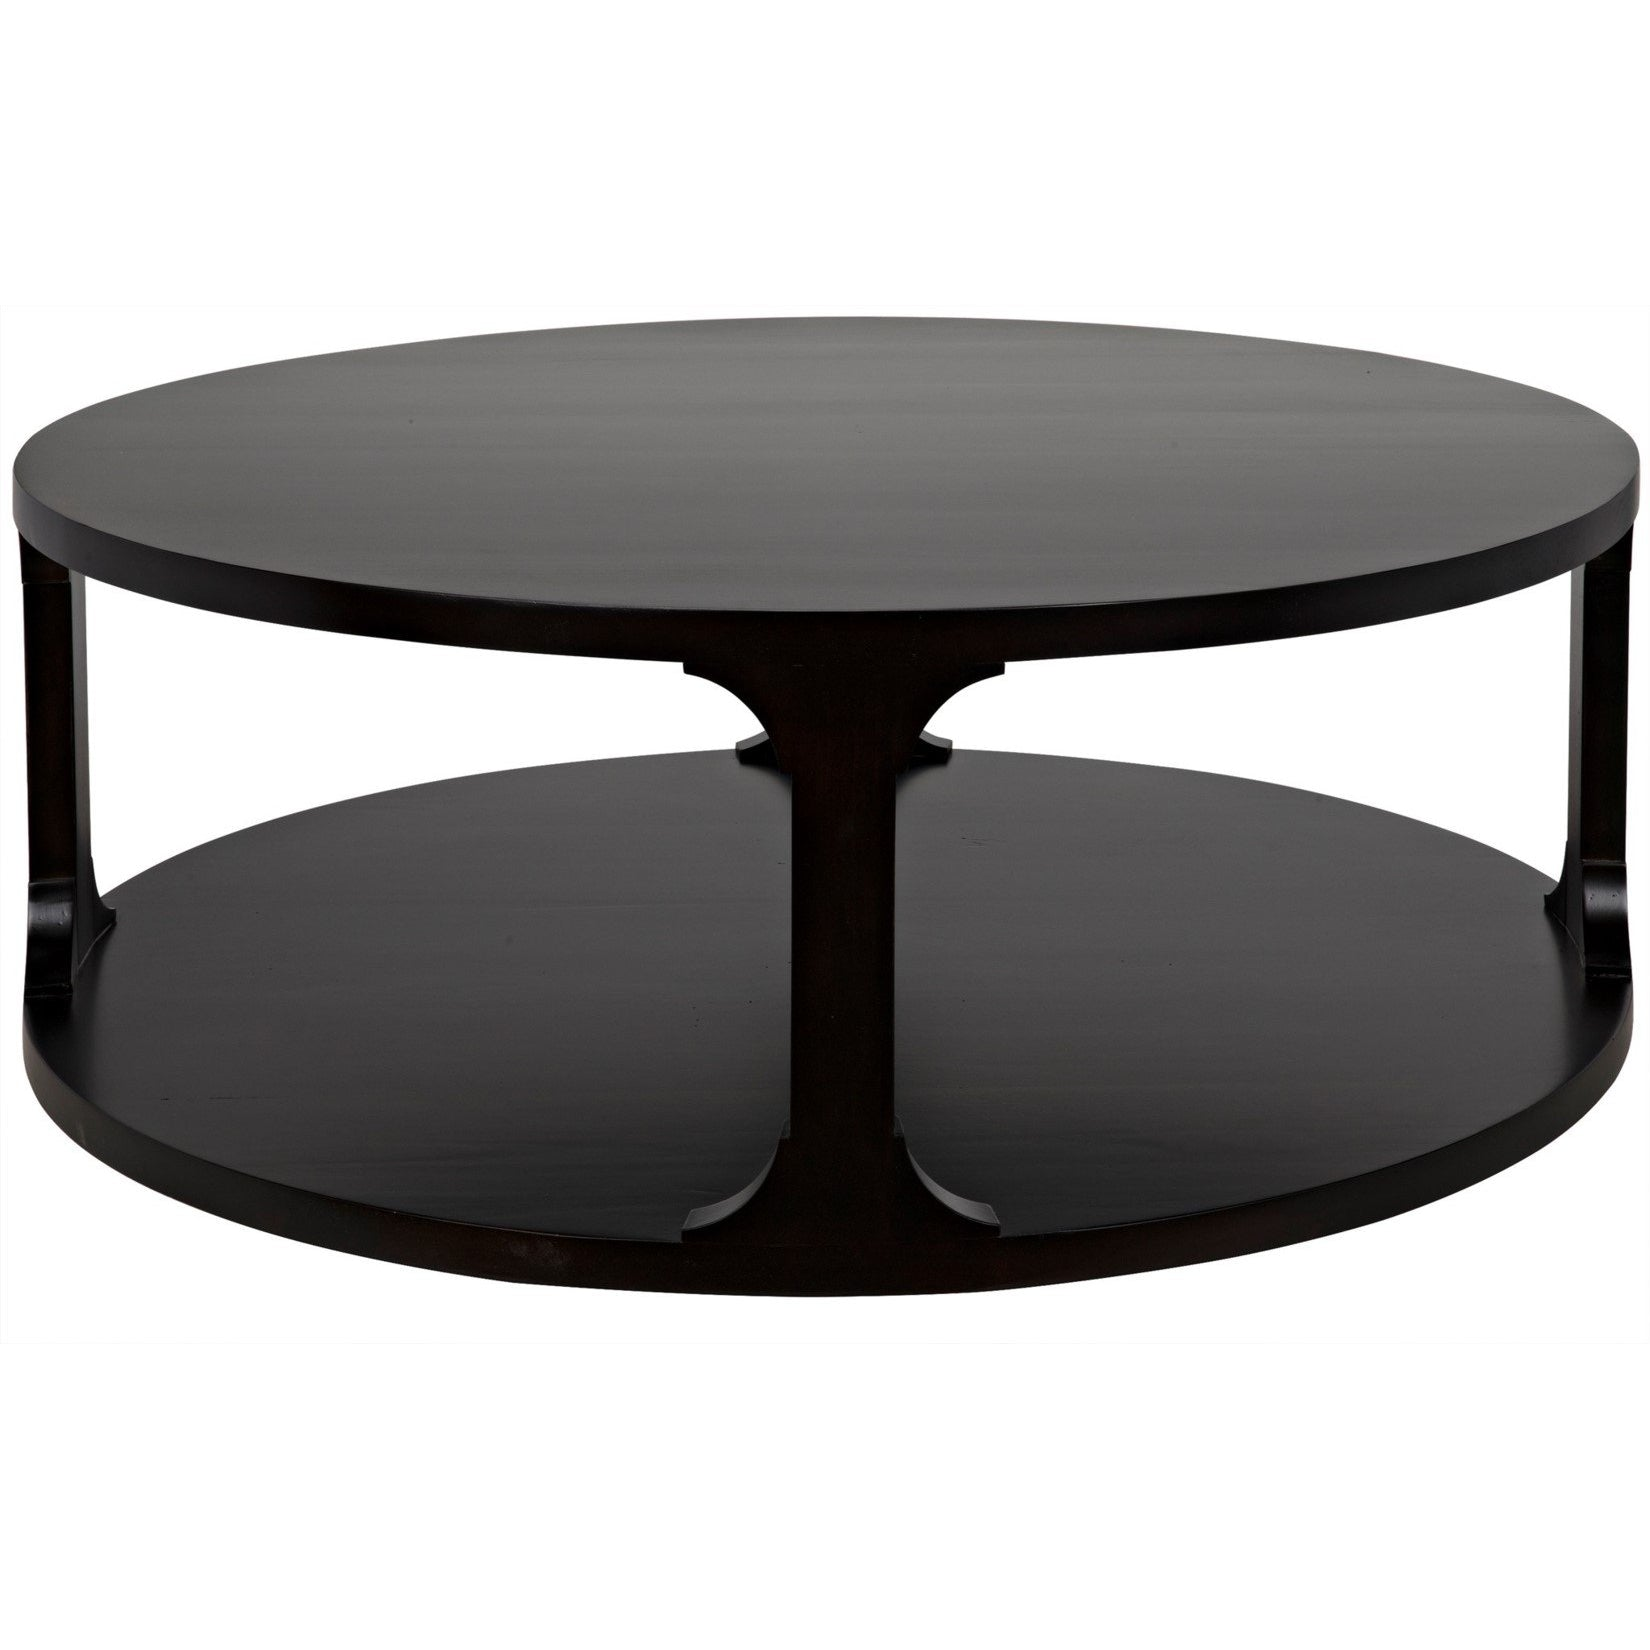 CFC Furniture Gimso Round Coffee Table, Alder